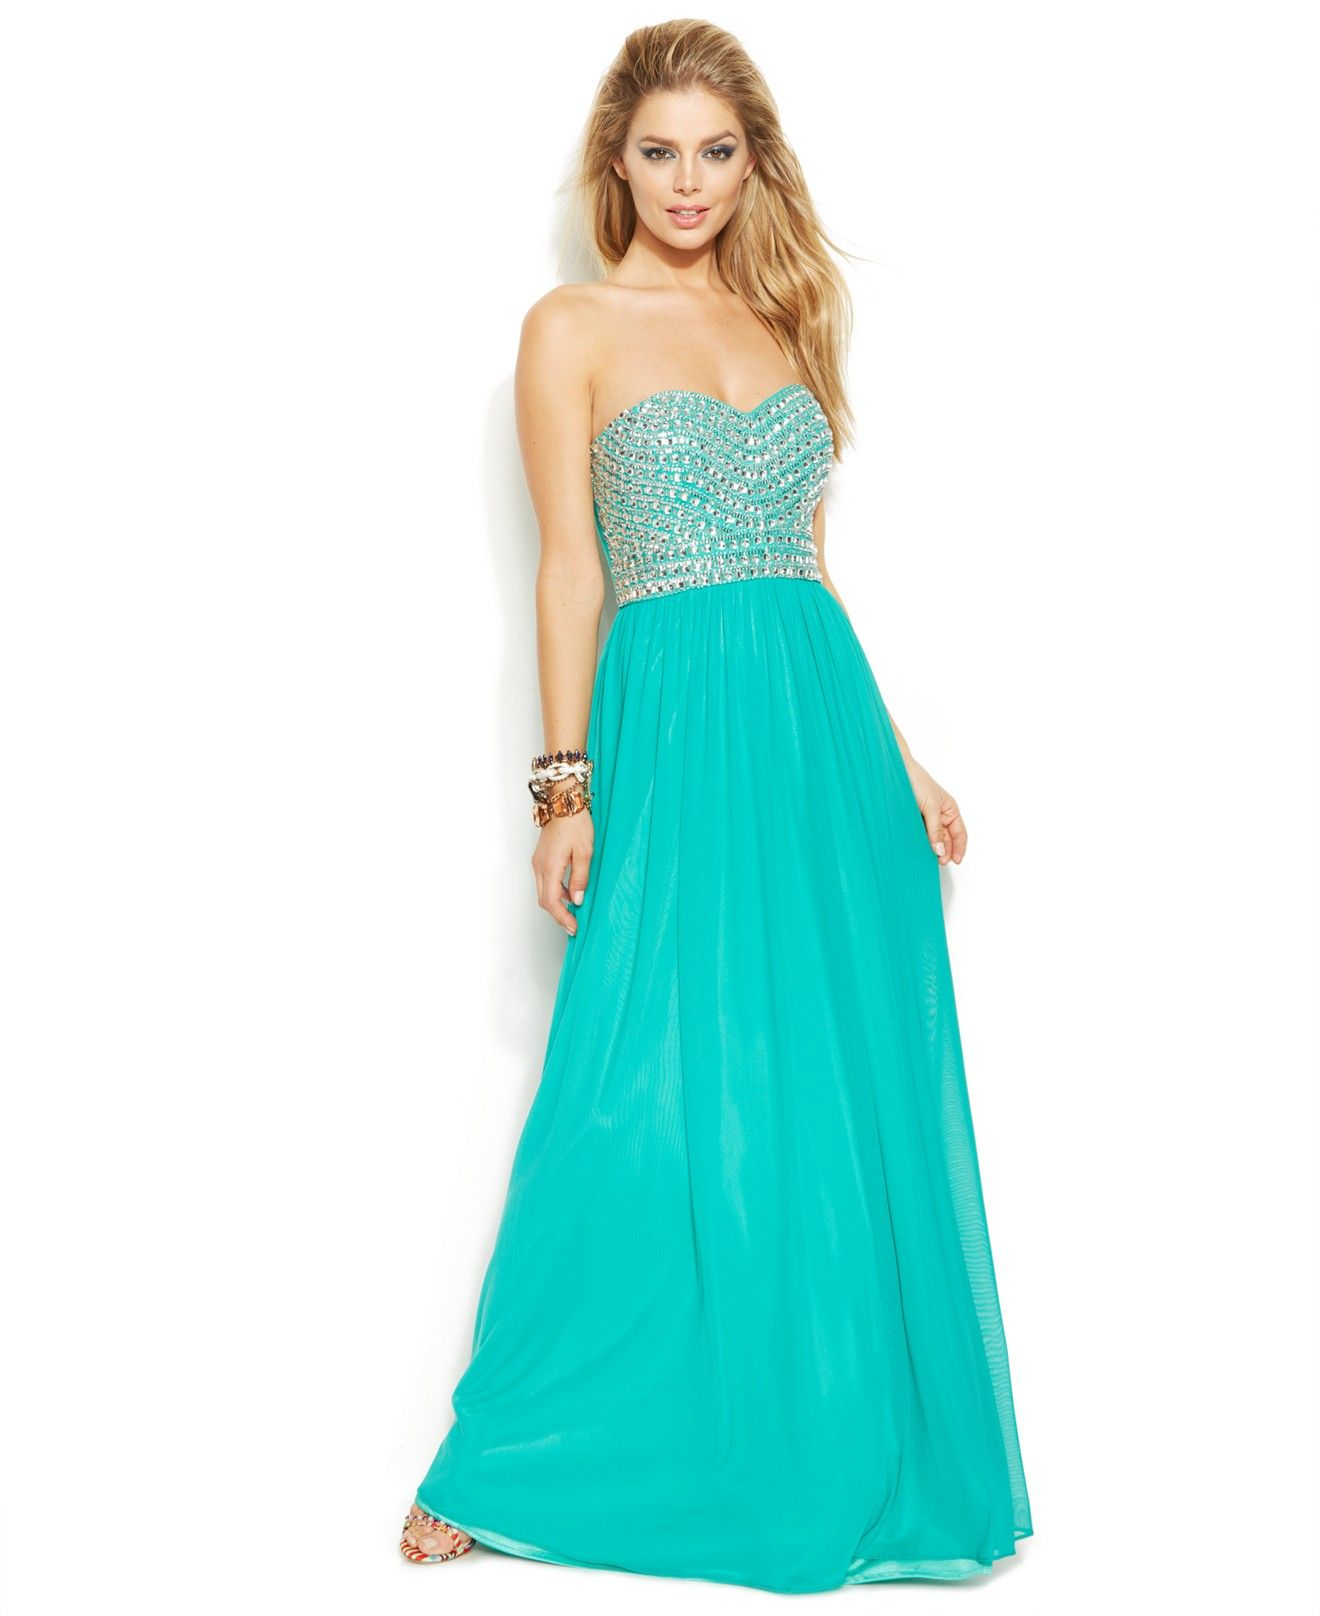 Joanna Chen Strapless Bead-Trim Pleated Gown - Juniors Shop All Prom ...